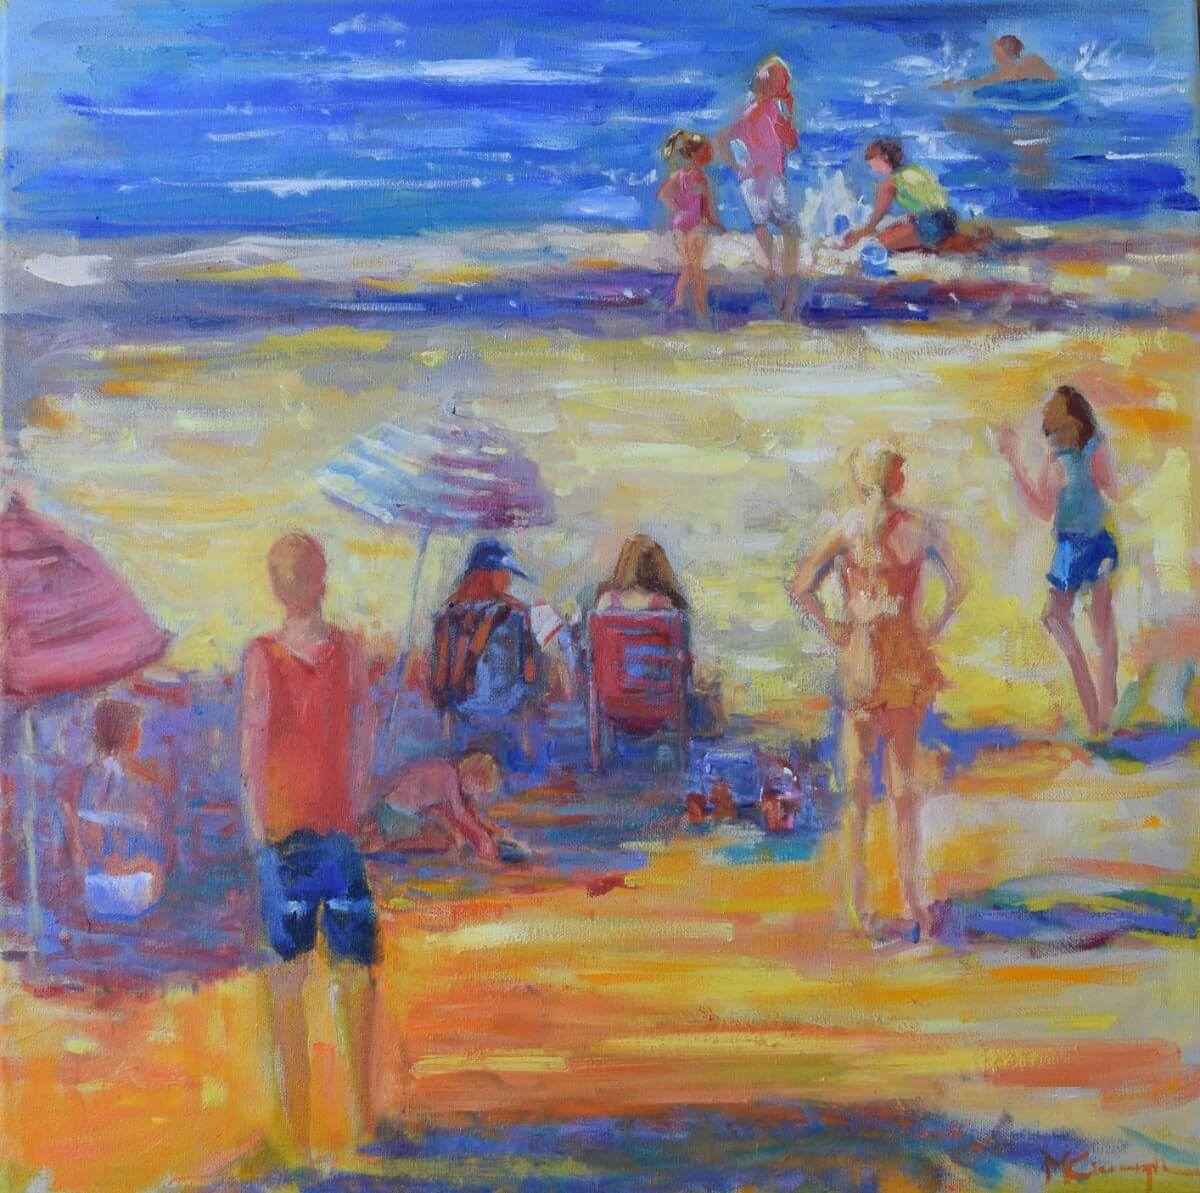 Beachgoers | Different wedding anniversary gift | Mishkalo Art Registry